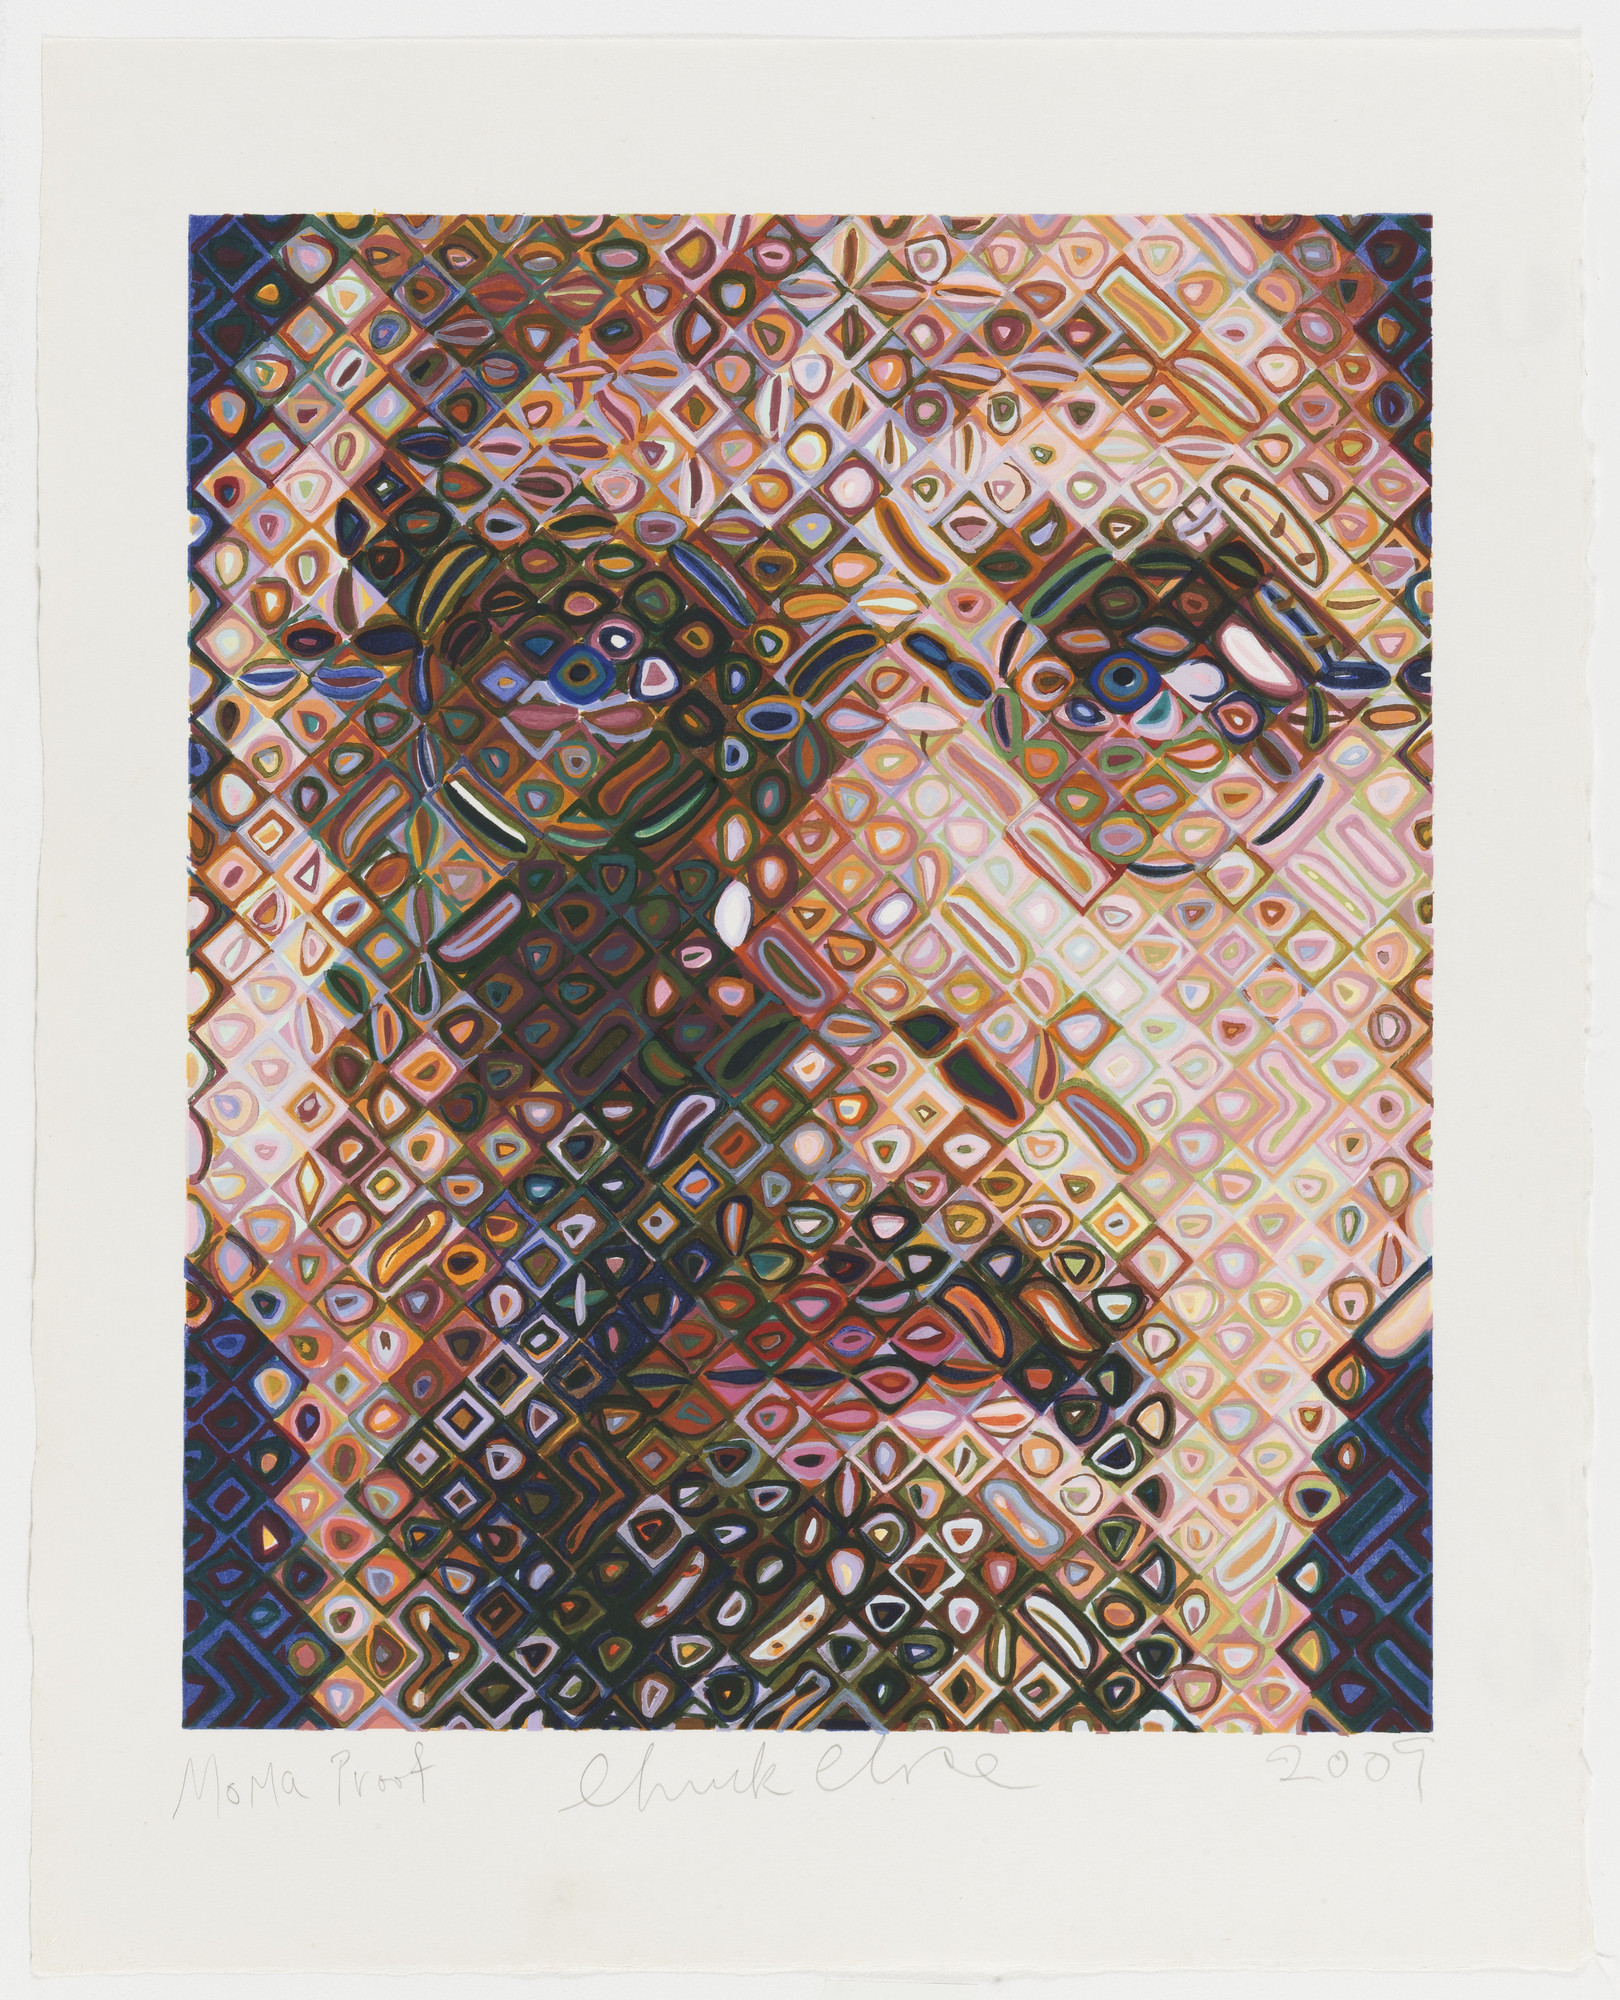 Chuck Close. Self-Portrait Woodcut. 2009